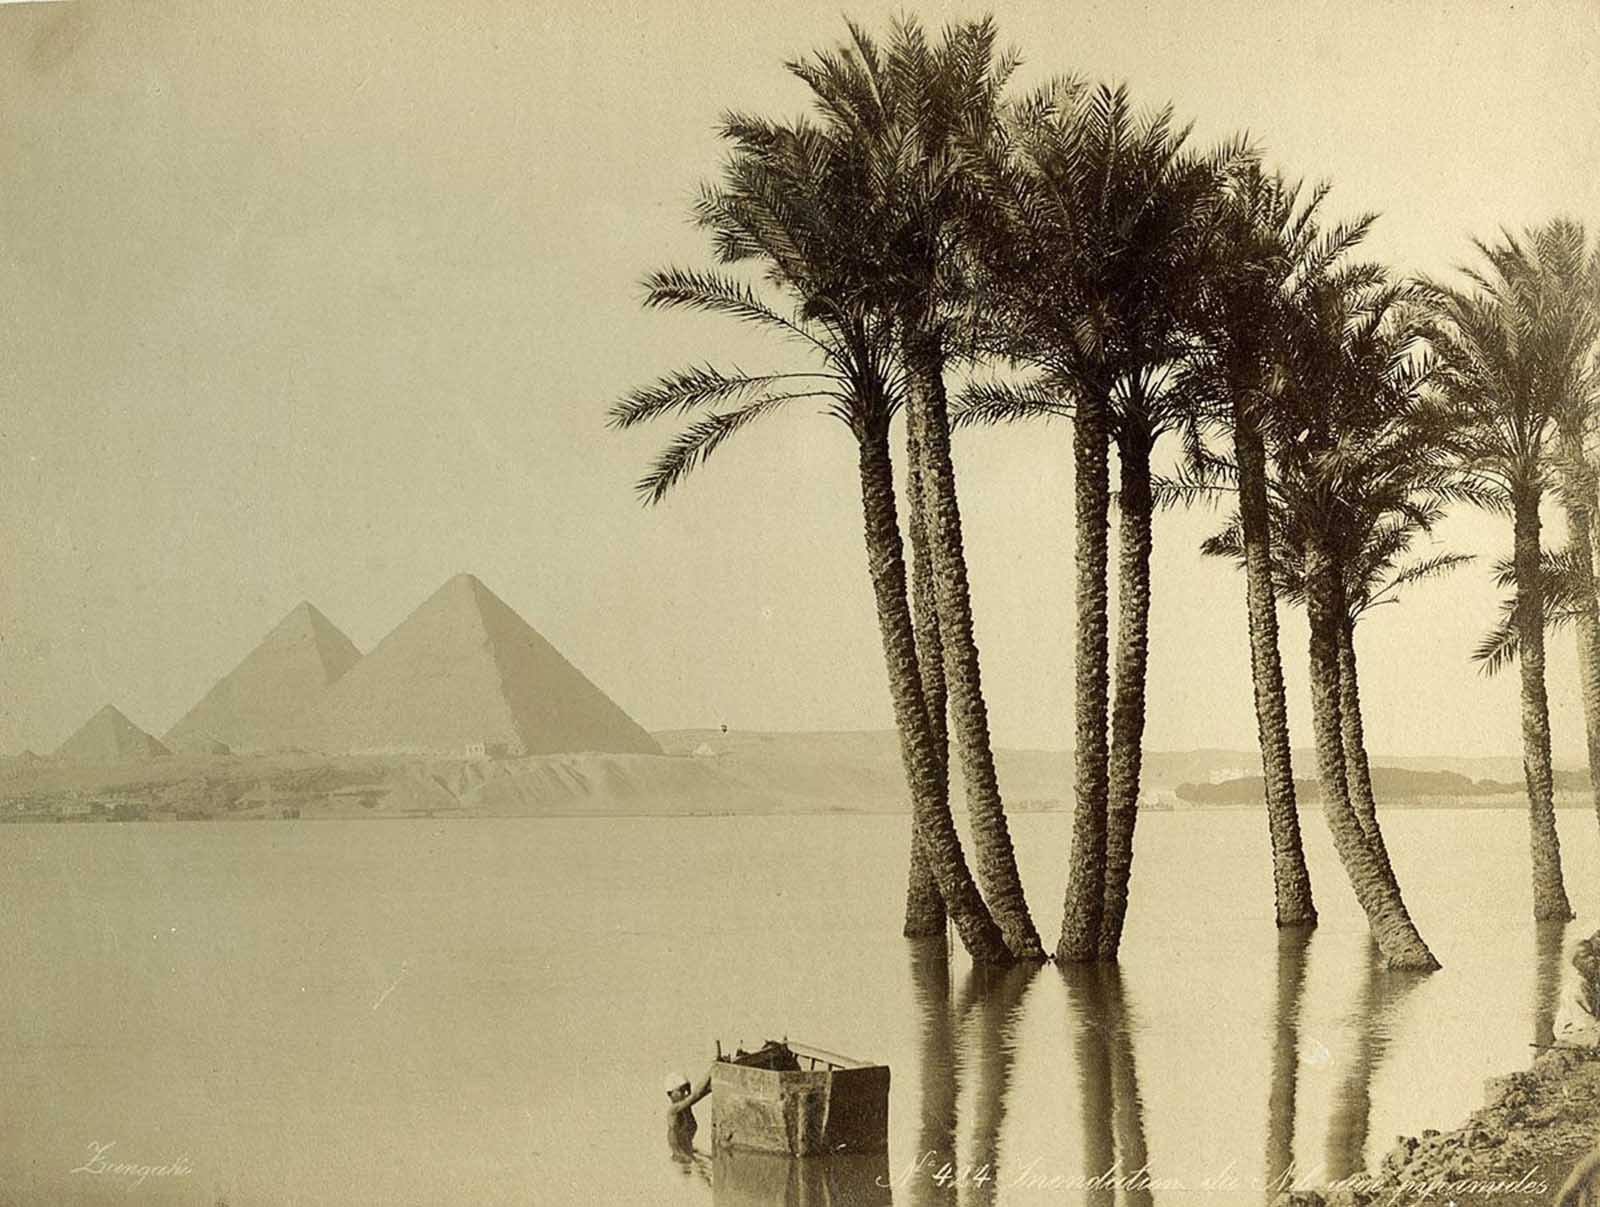 Flooded banks of the Nile.